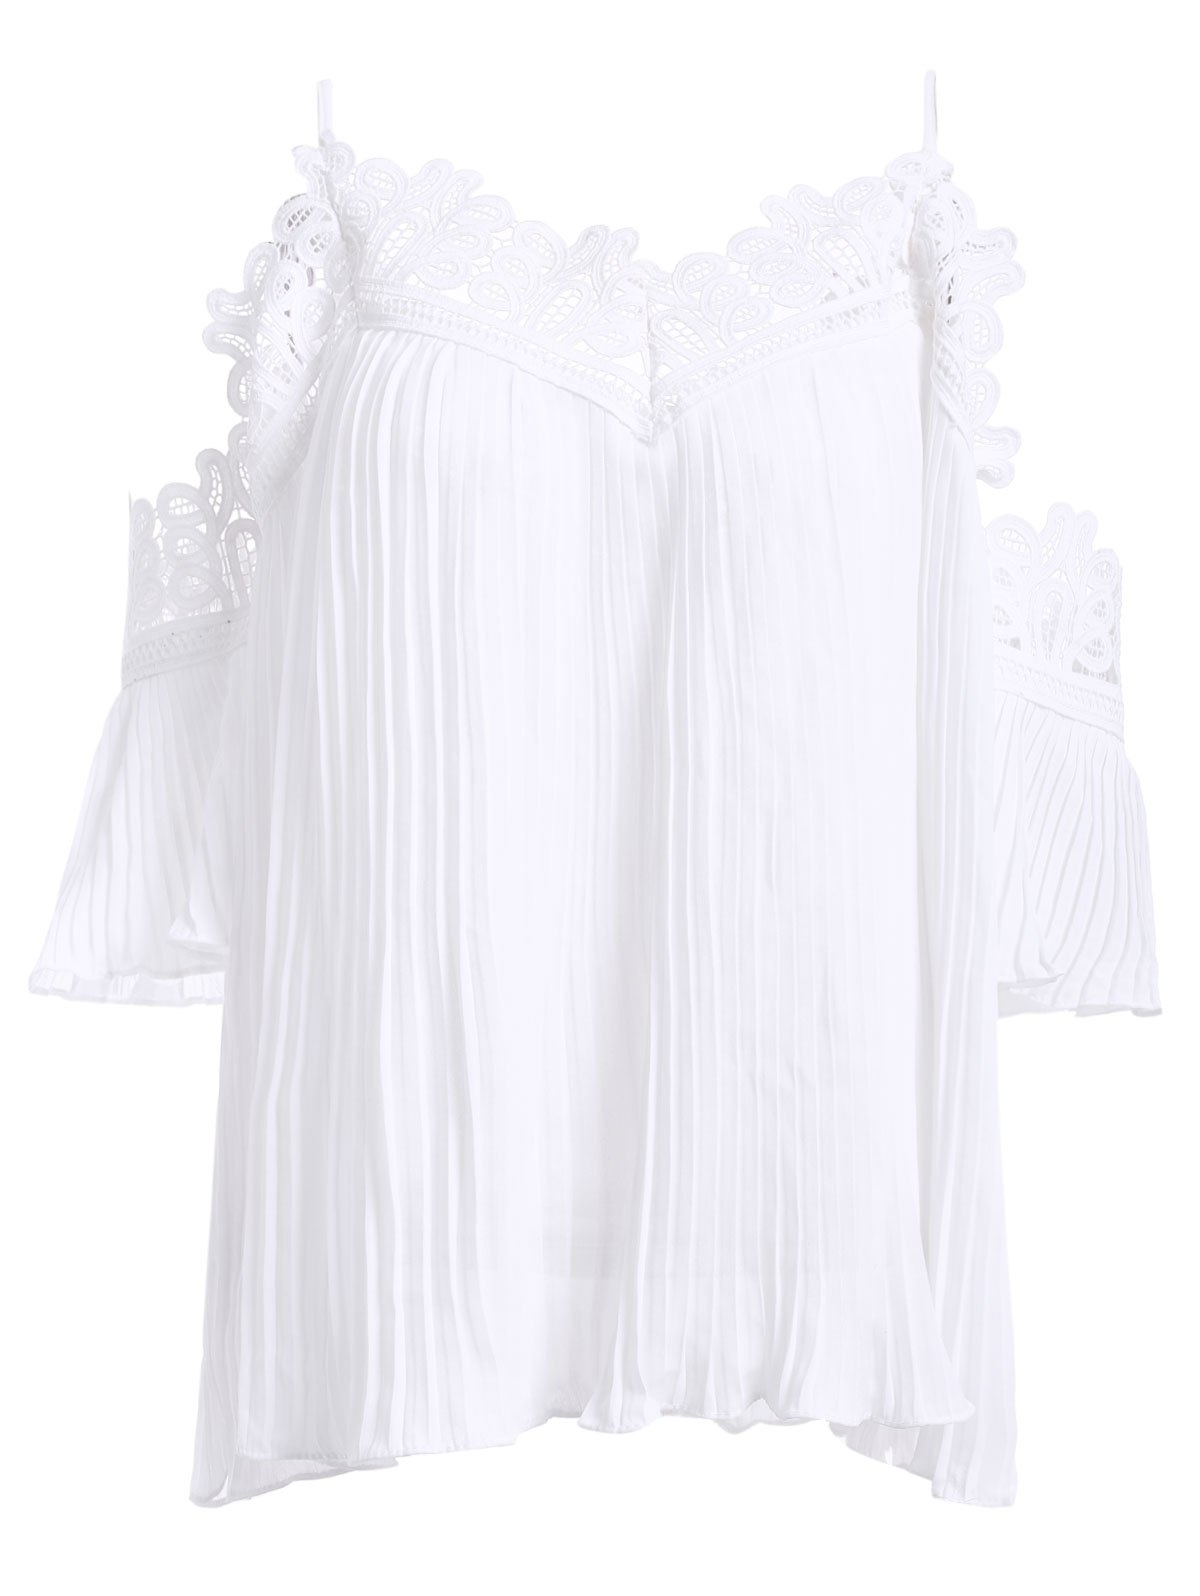 Loose-Fitting Women's Openwork Ruffles Spaghetti Strap Blouse - WHITE ONE SIZE(FIT SIZE XS TO M)